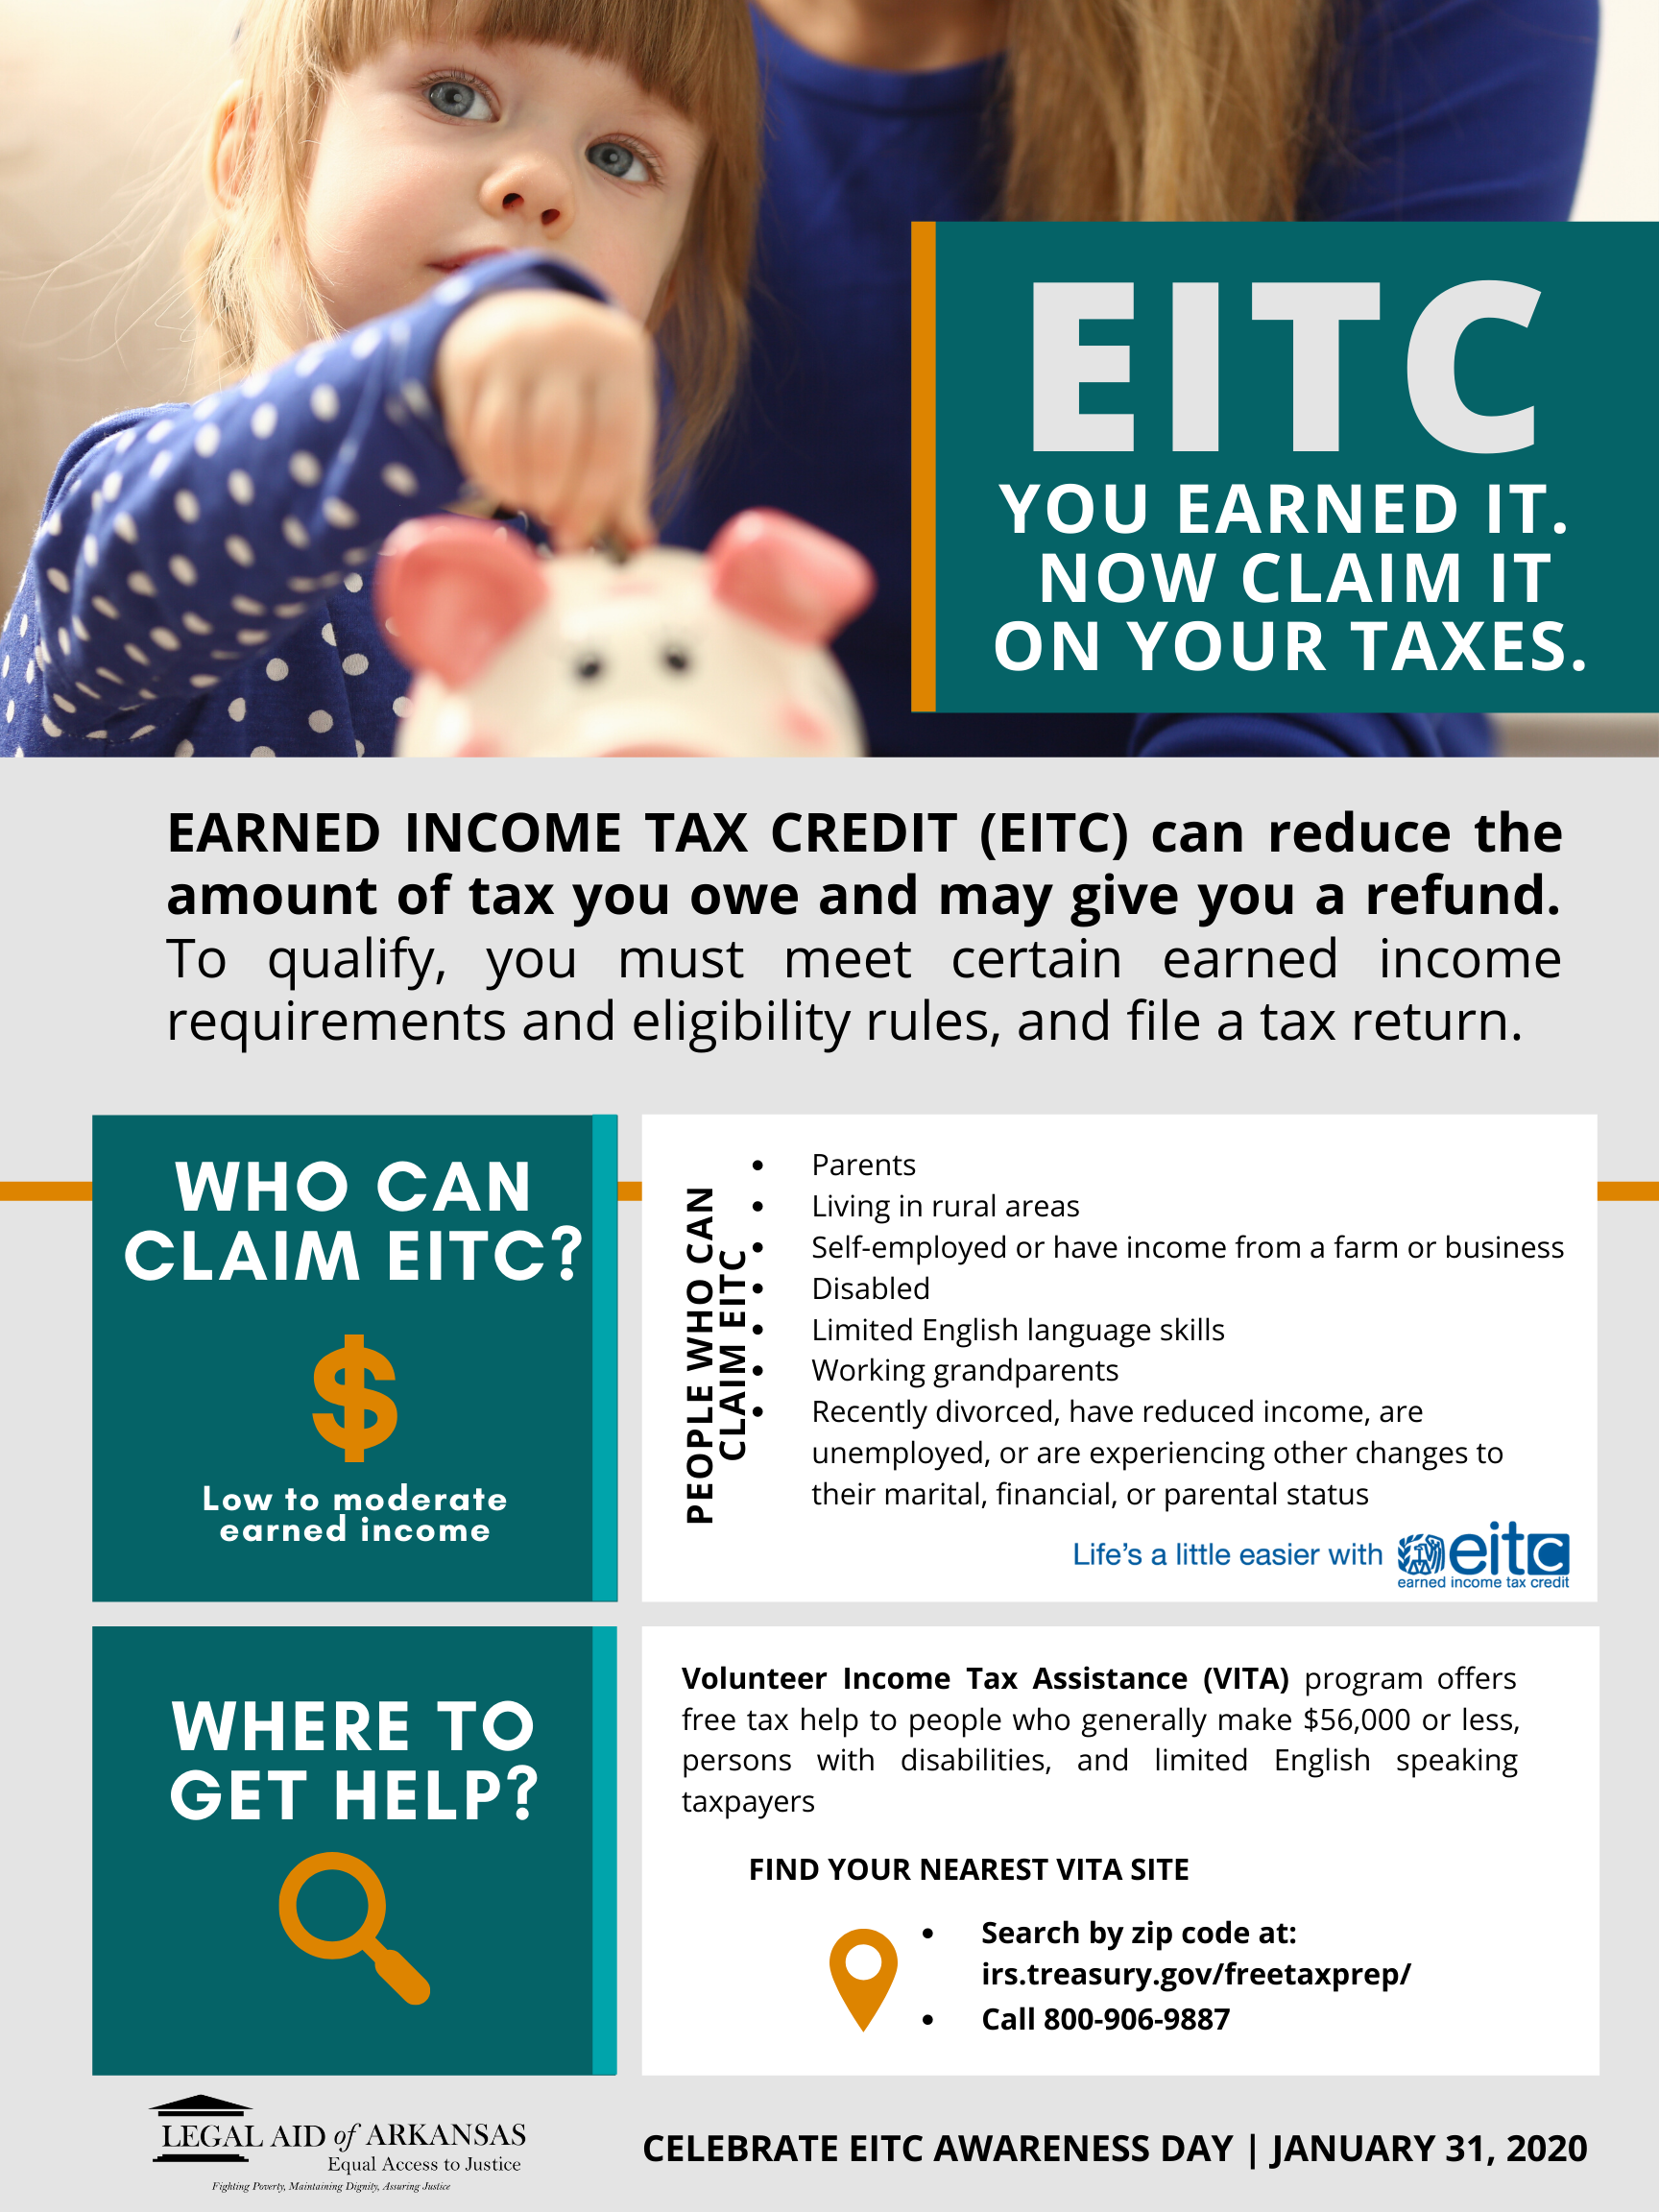 Are You Eligible for EITC? Legal Aid Answers Your Questions about Taxes